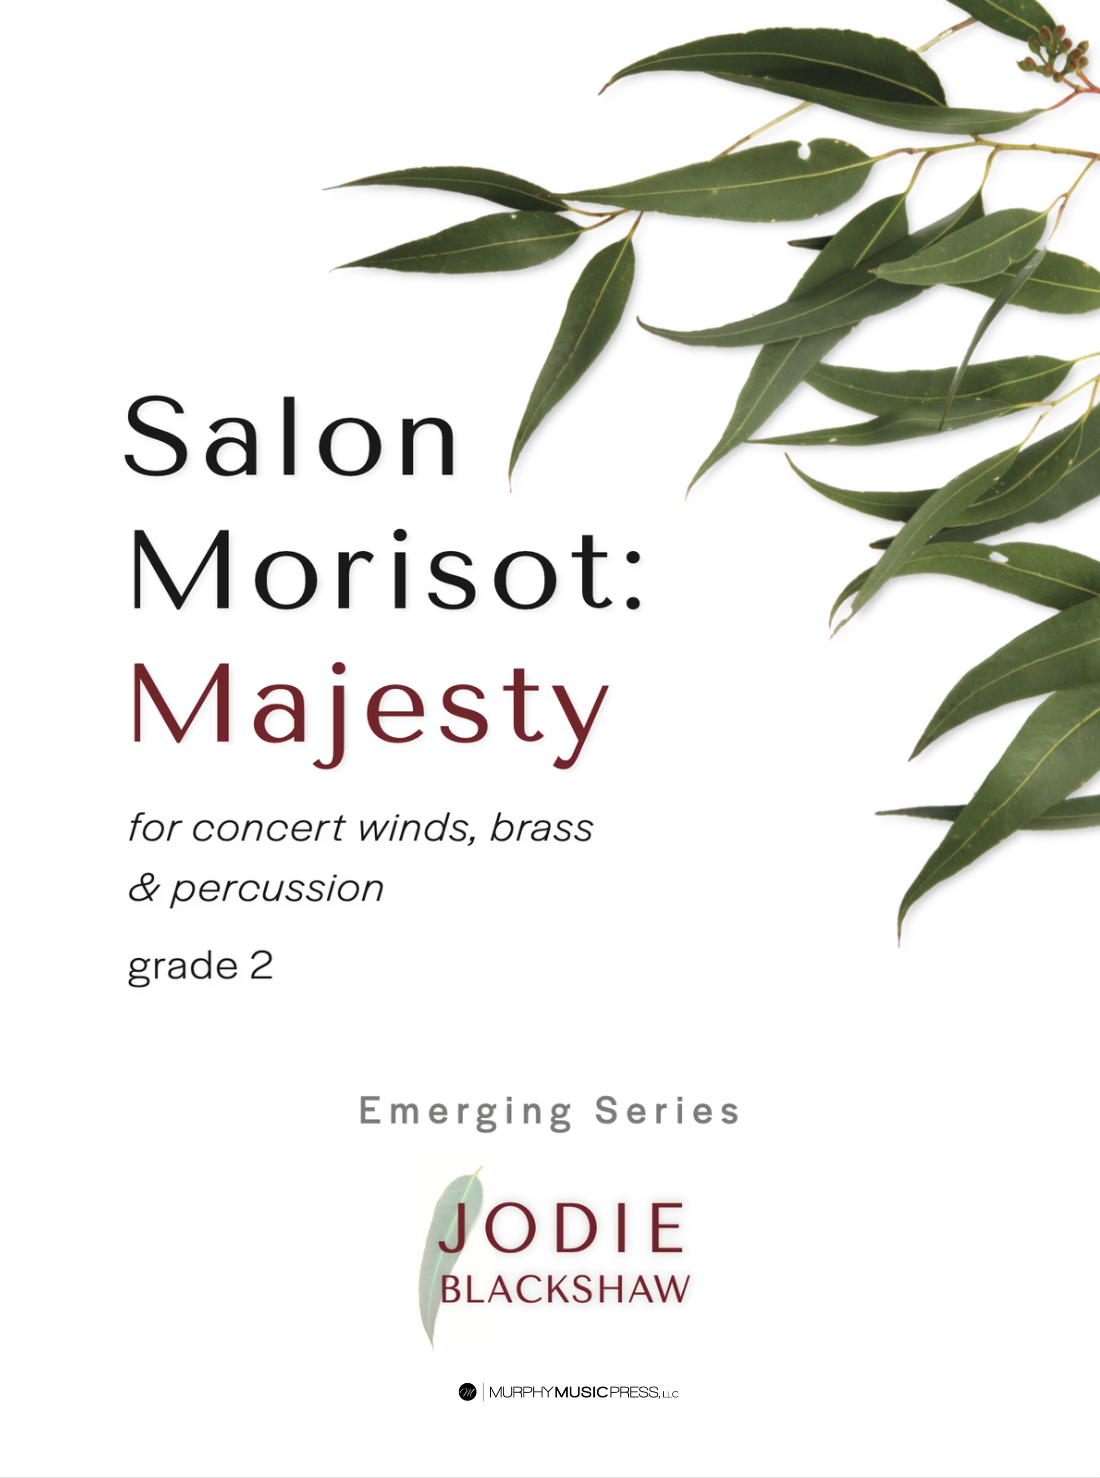 Majesty by Jodie Blackshaw